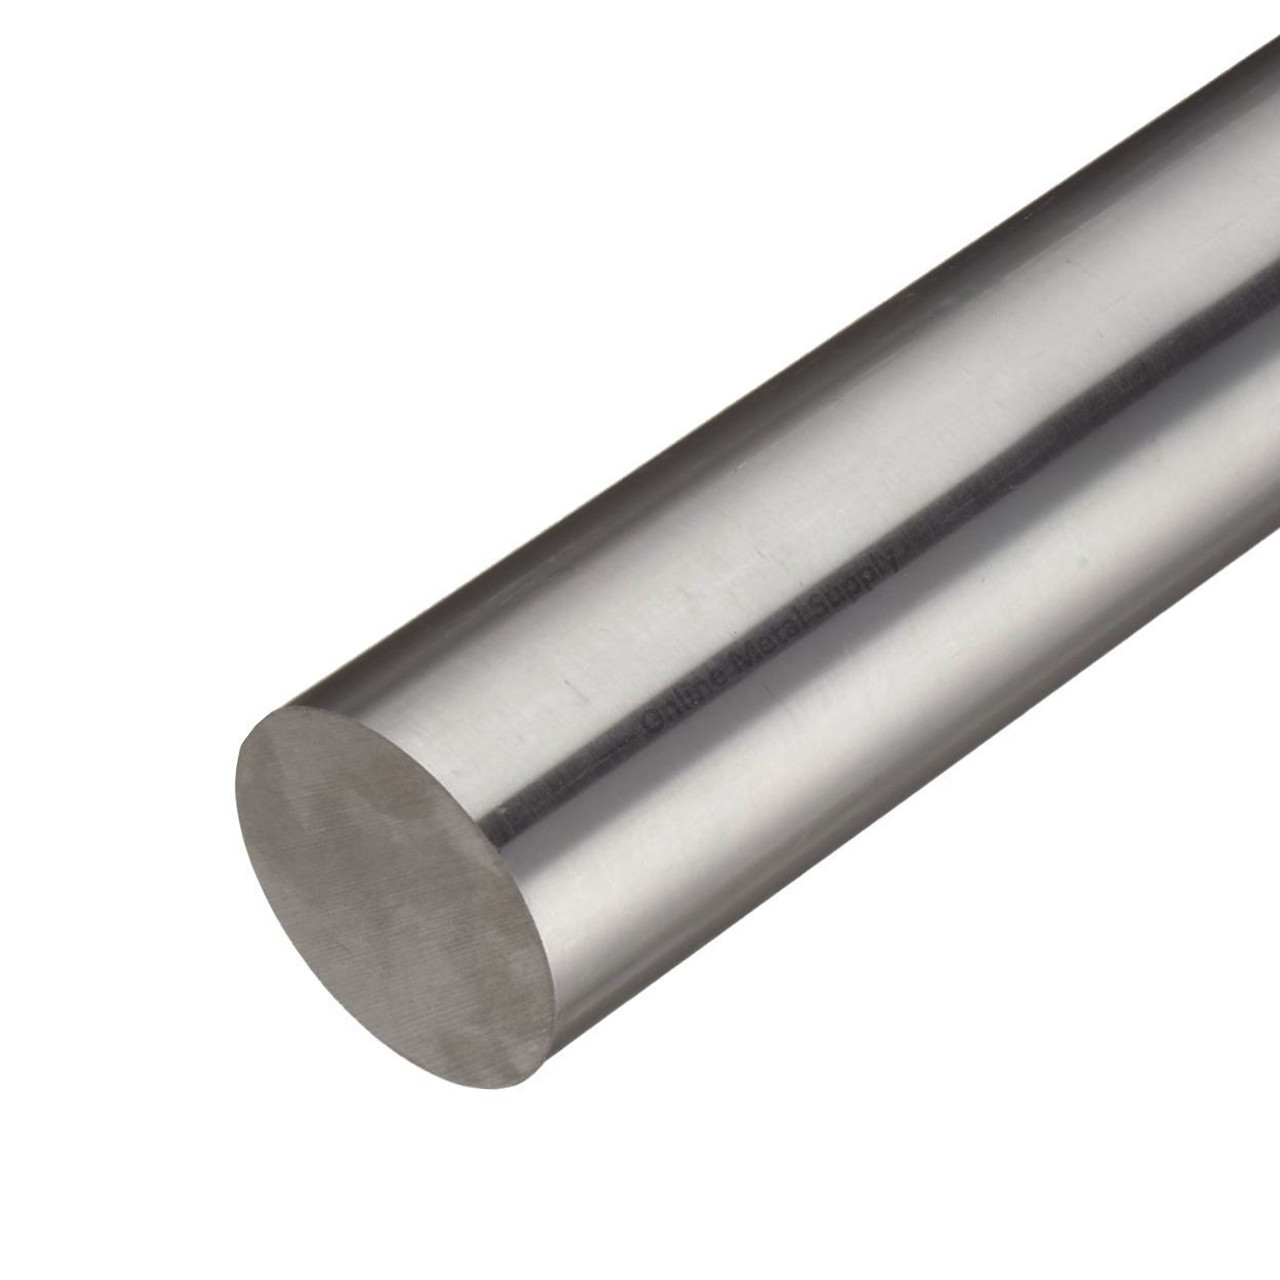 1.687 (1-11/16 inch) x 60 inches, 416 CF Stainless Steel Round Rod